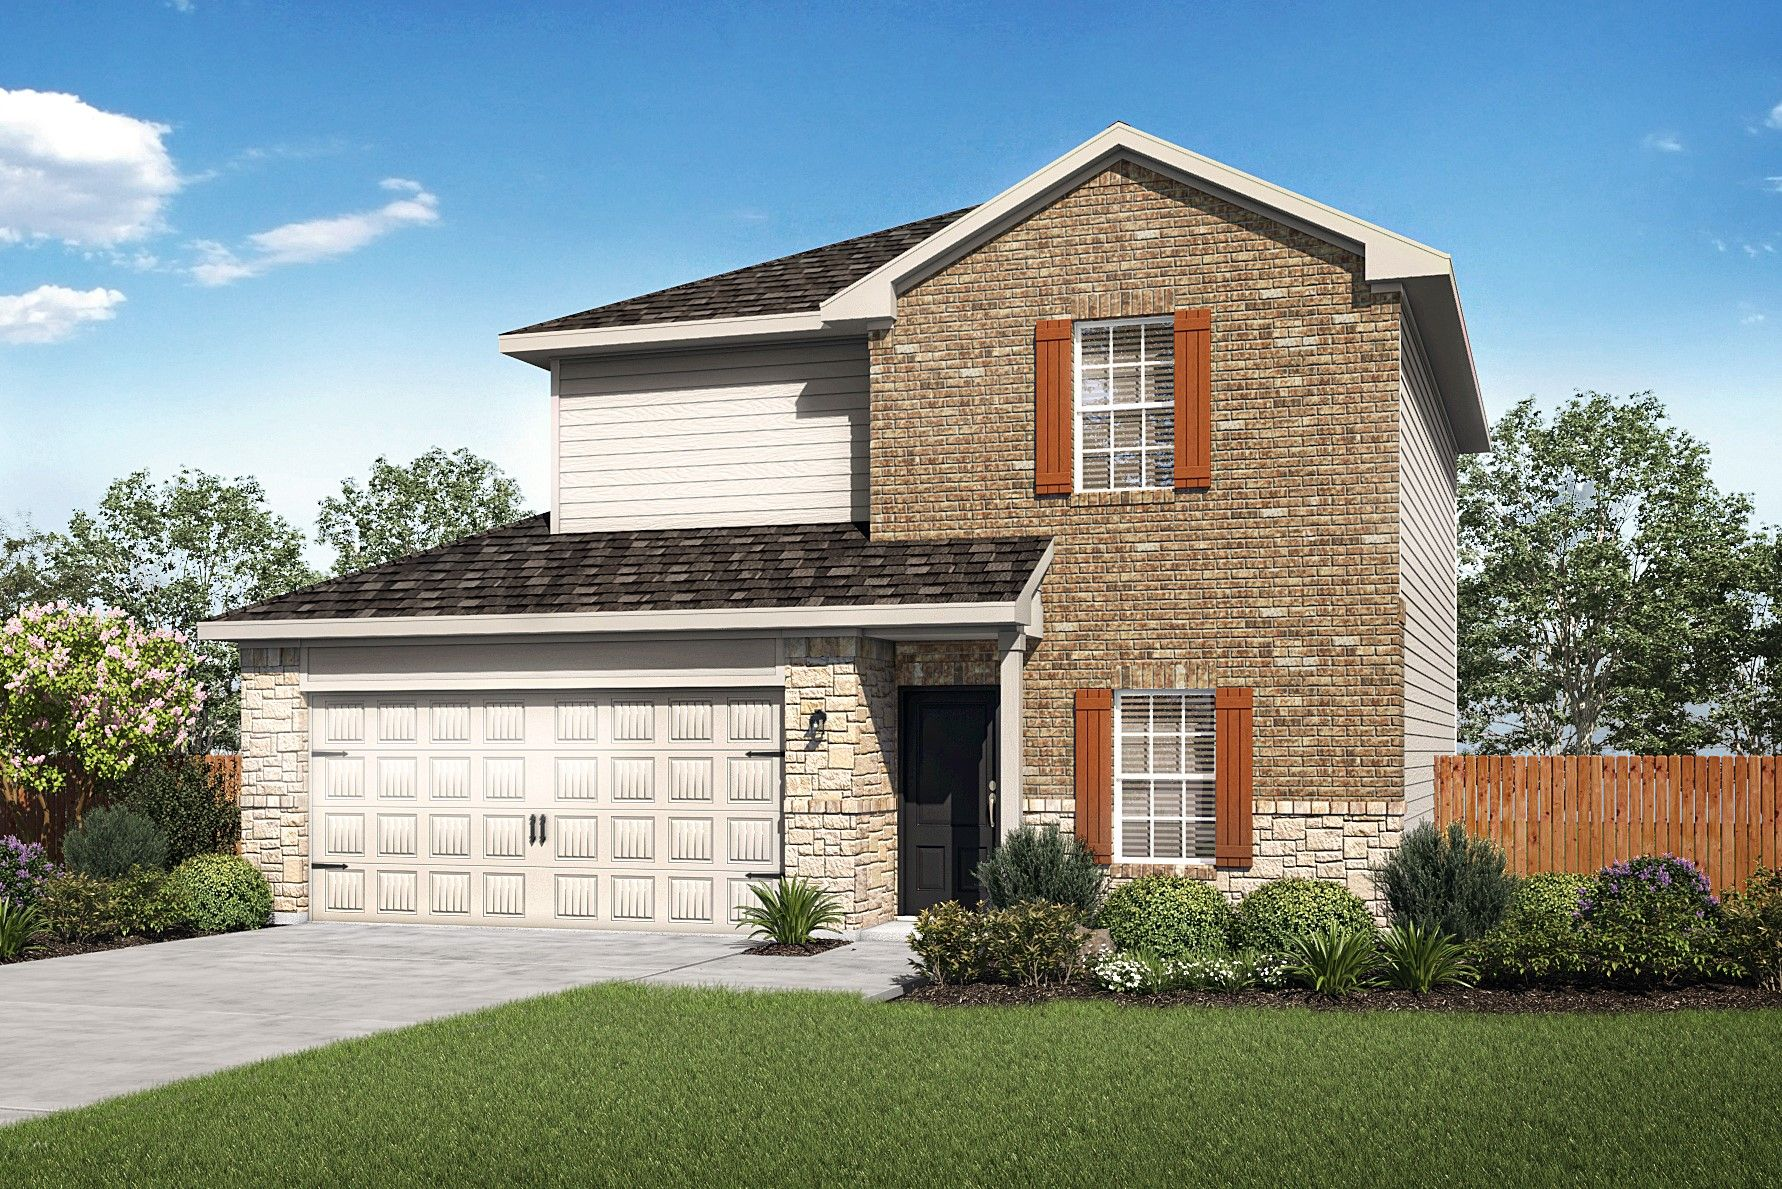 The Carson by LGI Homes:The gorgeous Carson is available now at Talise de Culebra!